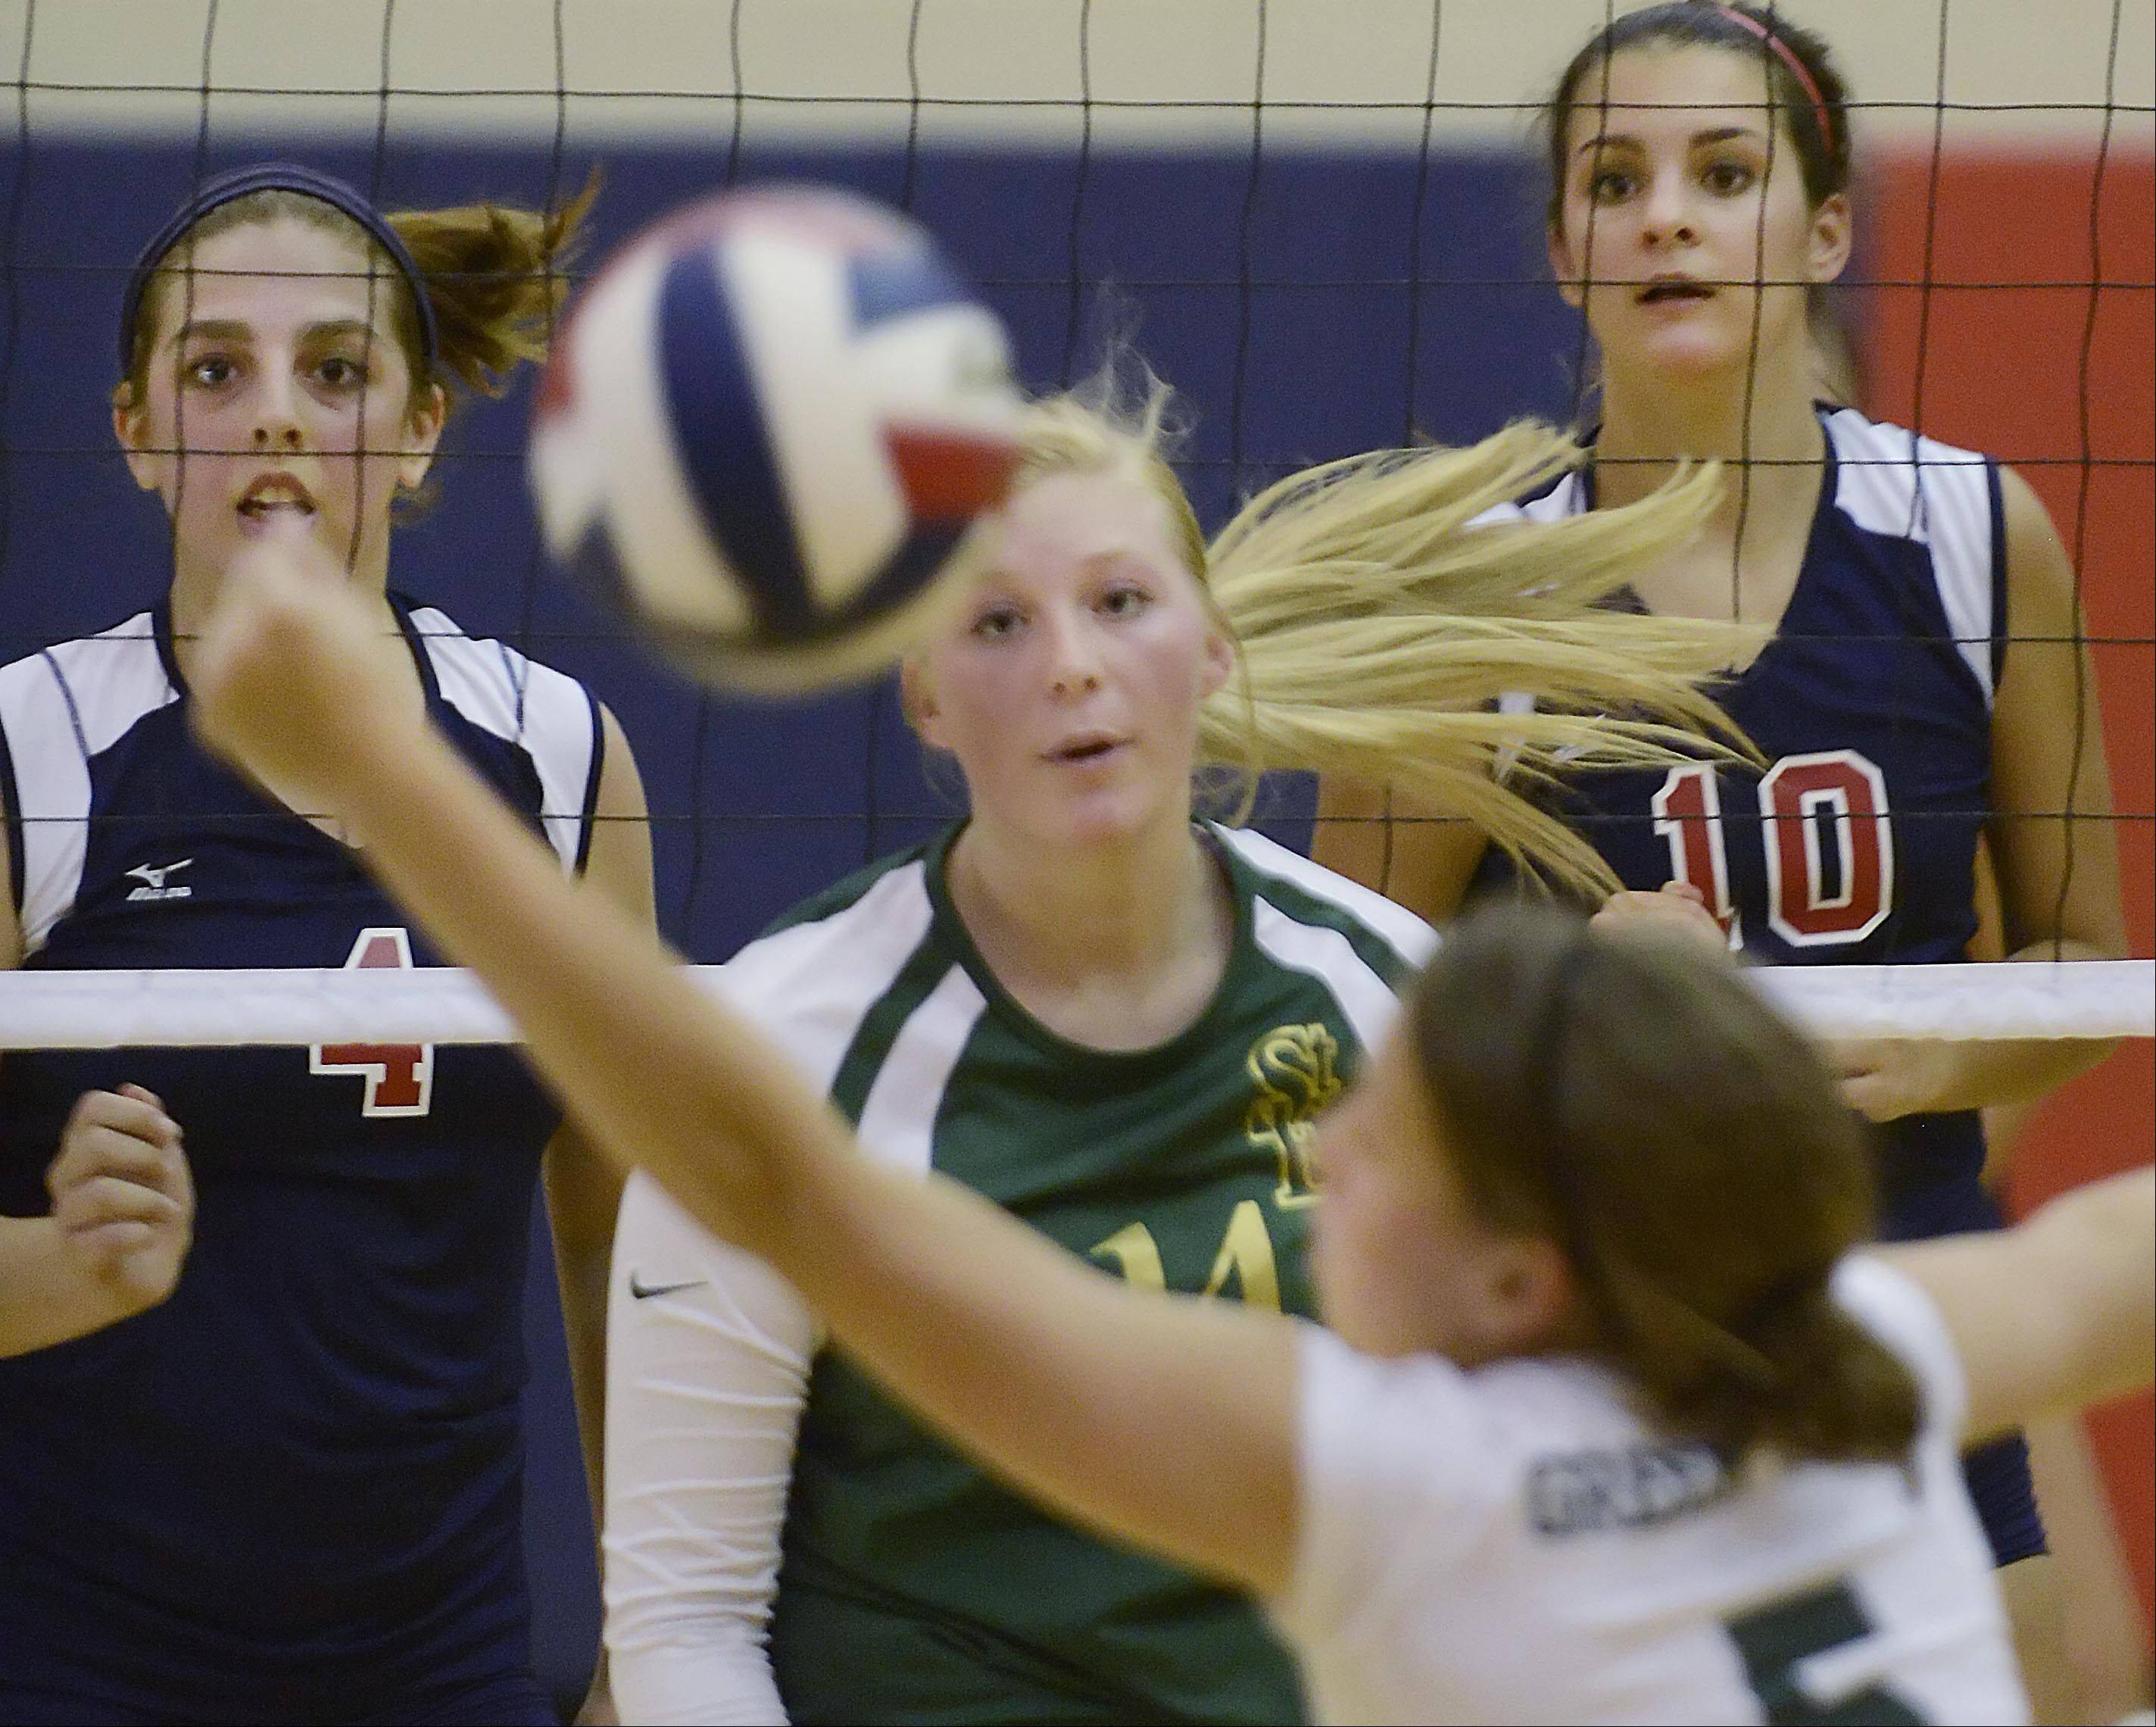 St. Edward's Allison Kruk lunges to save a shot as teammate Shannon Igielski and South Elgin's Adrianna Loiacono and Alyssa Miner watch Wednesday in South Elgin.